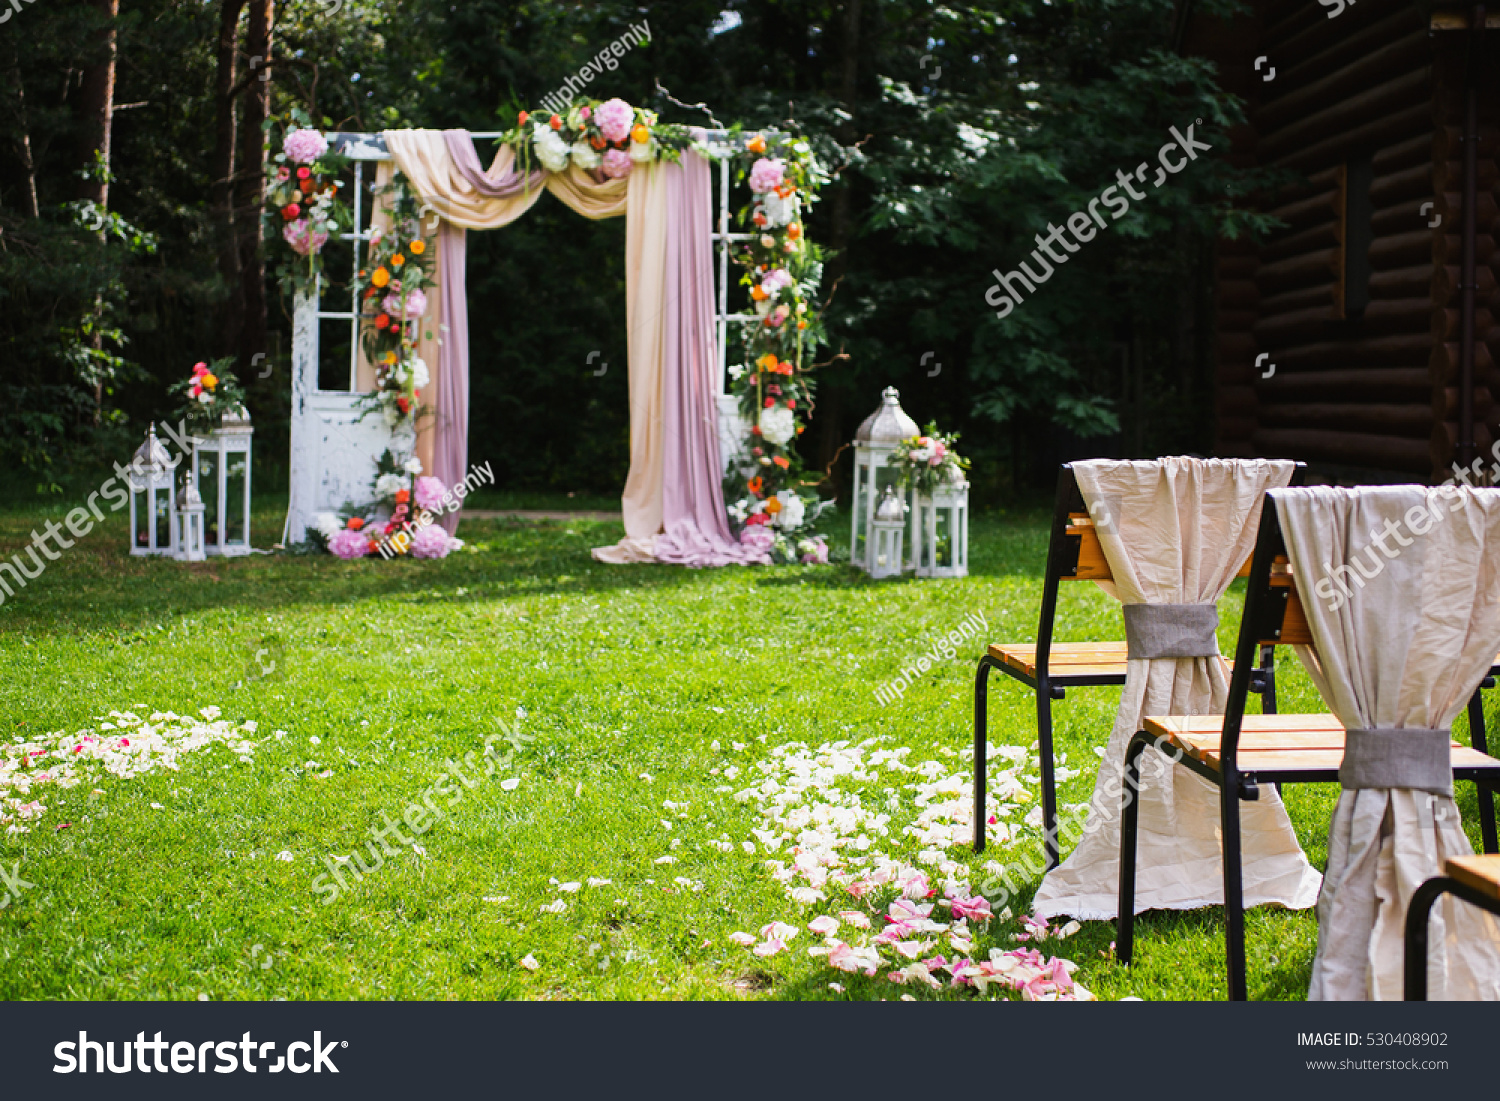 Wedding ceremony chair - Beautiful Wedding Ceremony Outdoors Decorated Chairs Stand On The Grass Wedding Arch Made Of